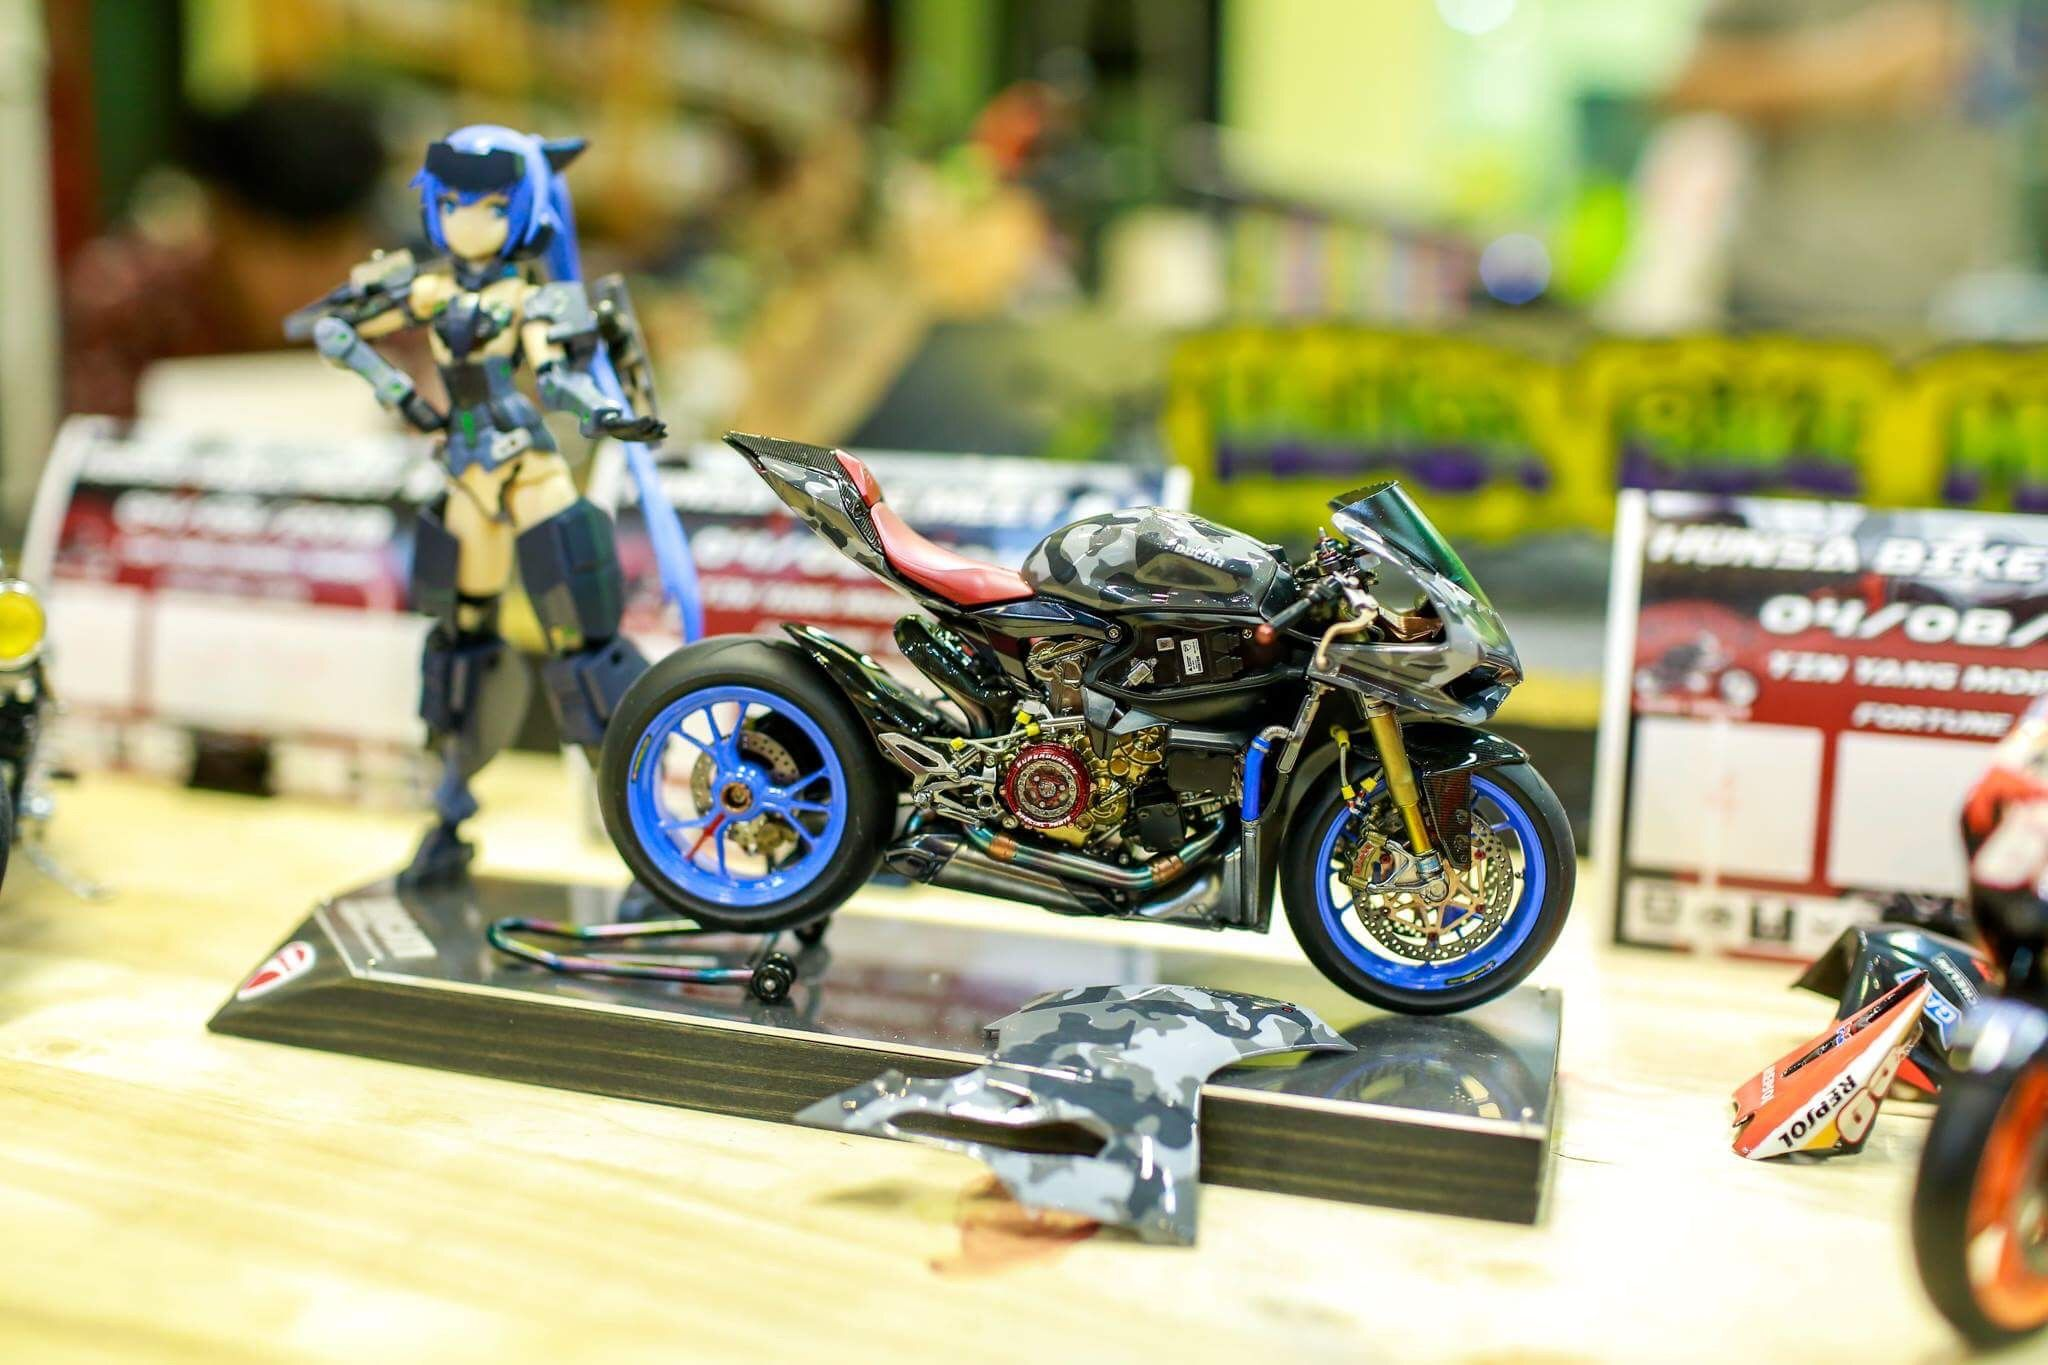 Pin by Mohd Aizat on auto Tamiya, Diecast cars, Ducati